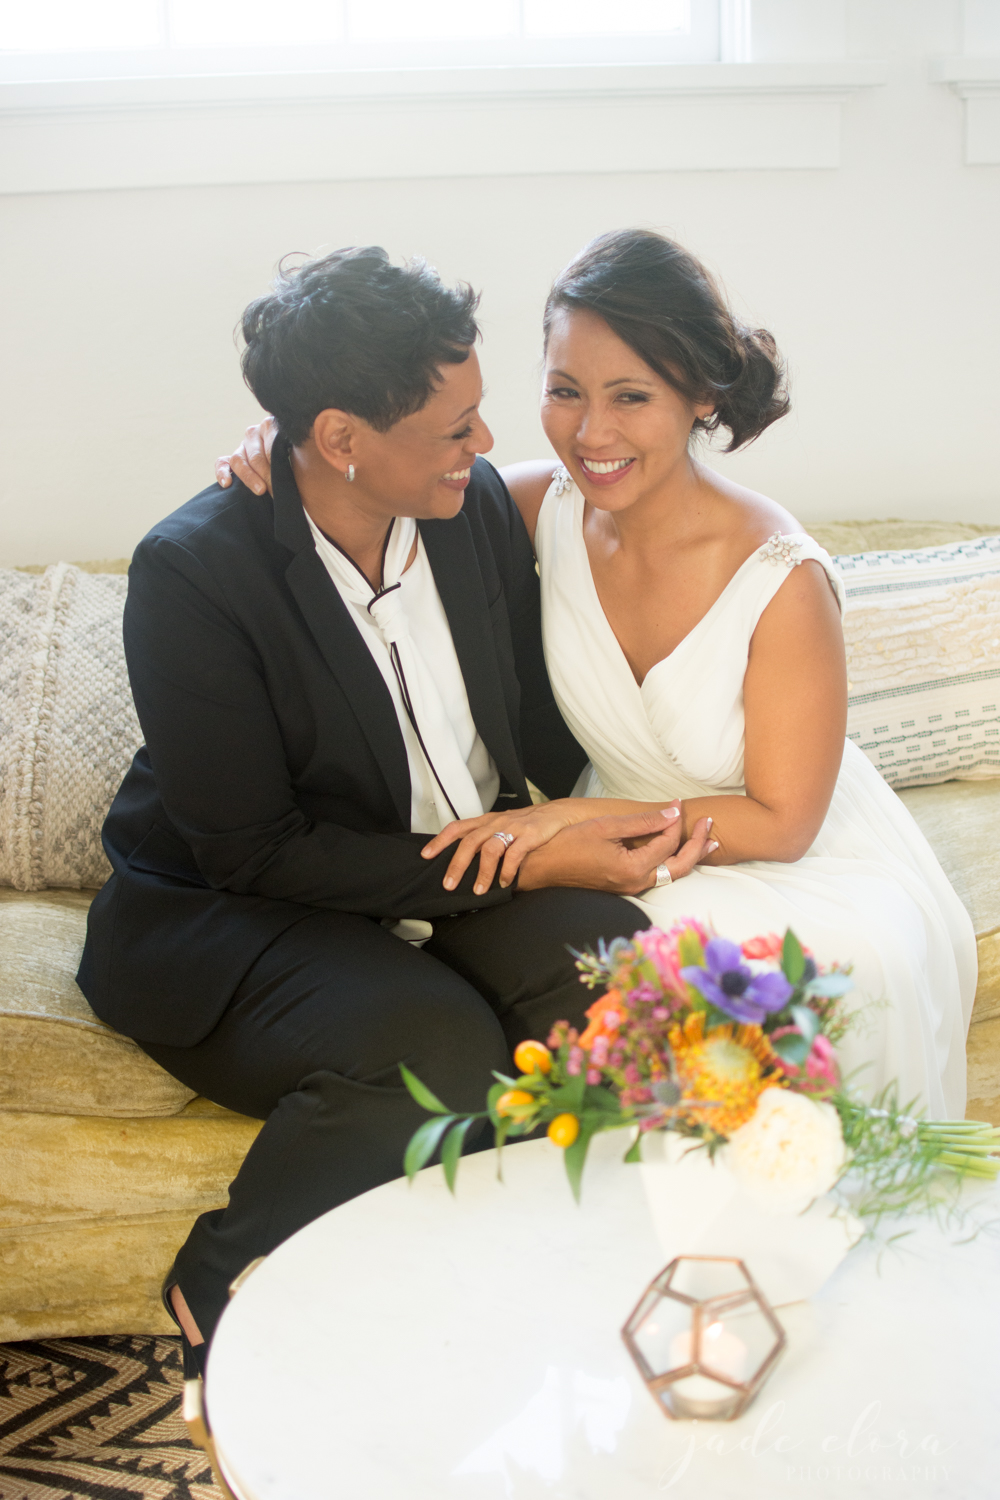 Same Sex Brides Cuddling on a Couch